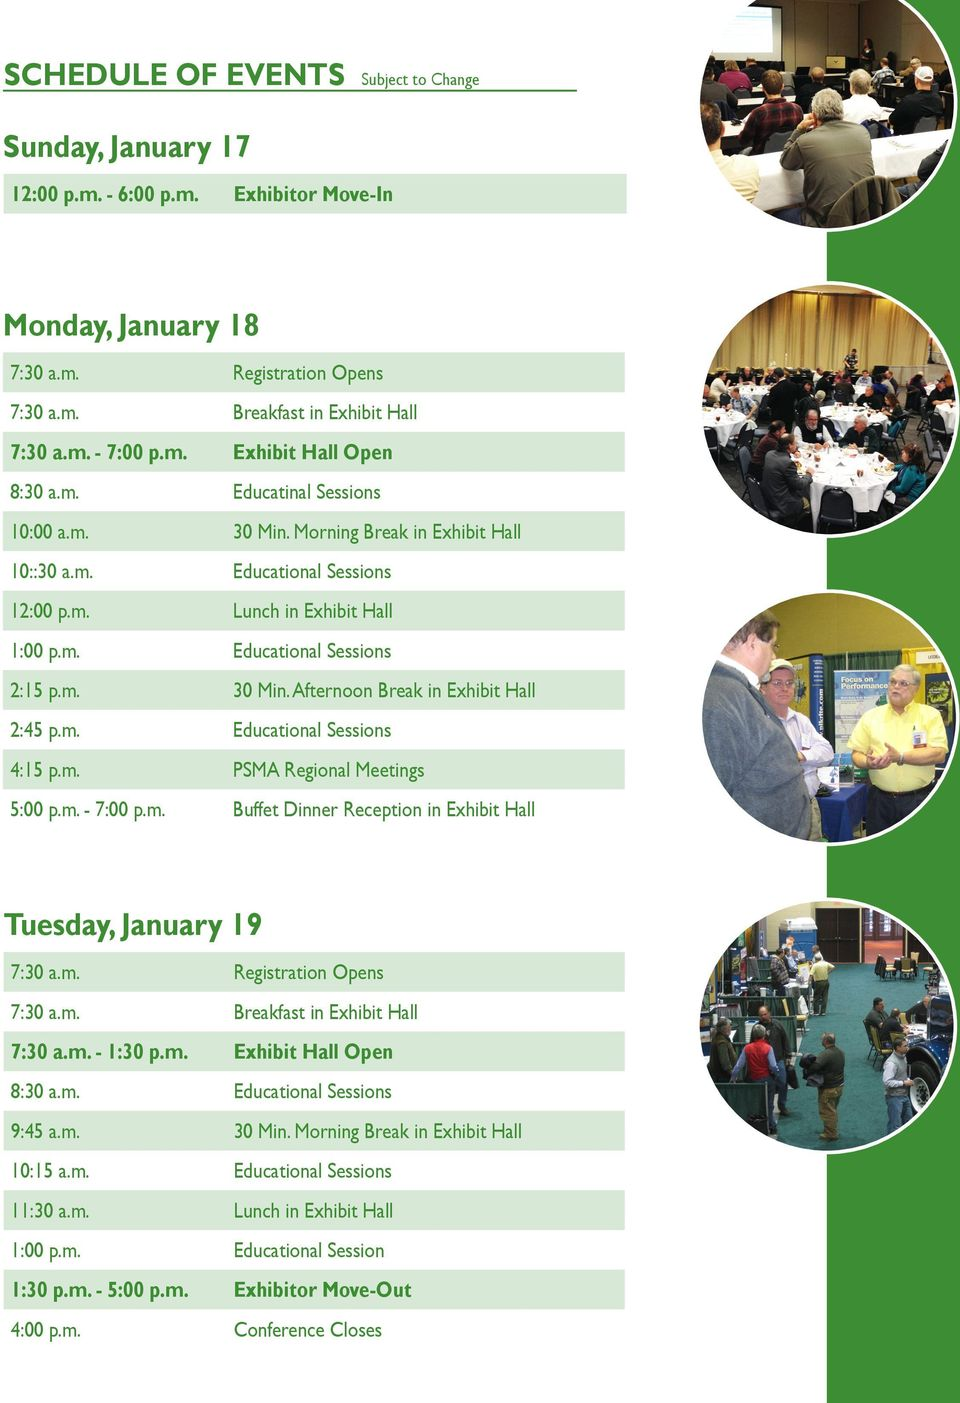 m. 30 Min. Afternoon Break in Exhibit Hall 2:45 p.m. Educational Sessions 4:15 p.m. PSMA Regional Meetings 5:00 p.m. - 7:00 p.m. Buffet Dinner Reception in Exhibit Hall Tuesday, January 19 7:30 a.m. Registration Opens 7:30 a.